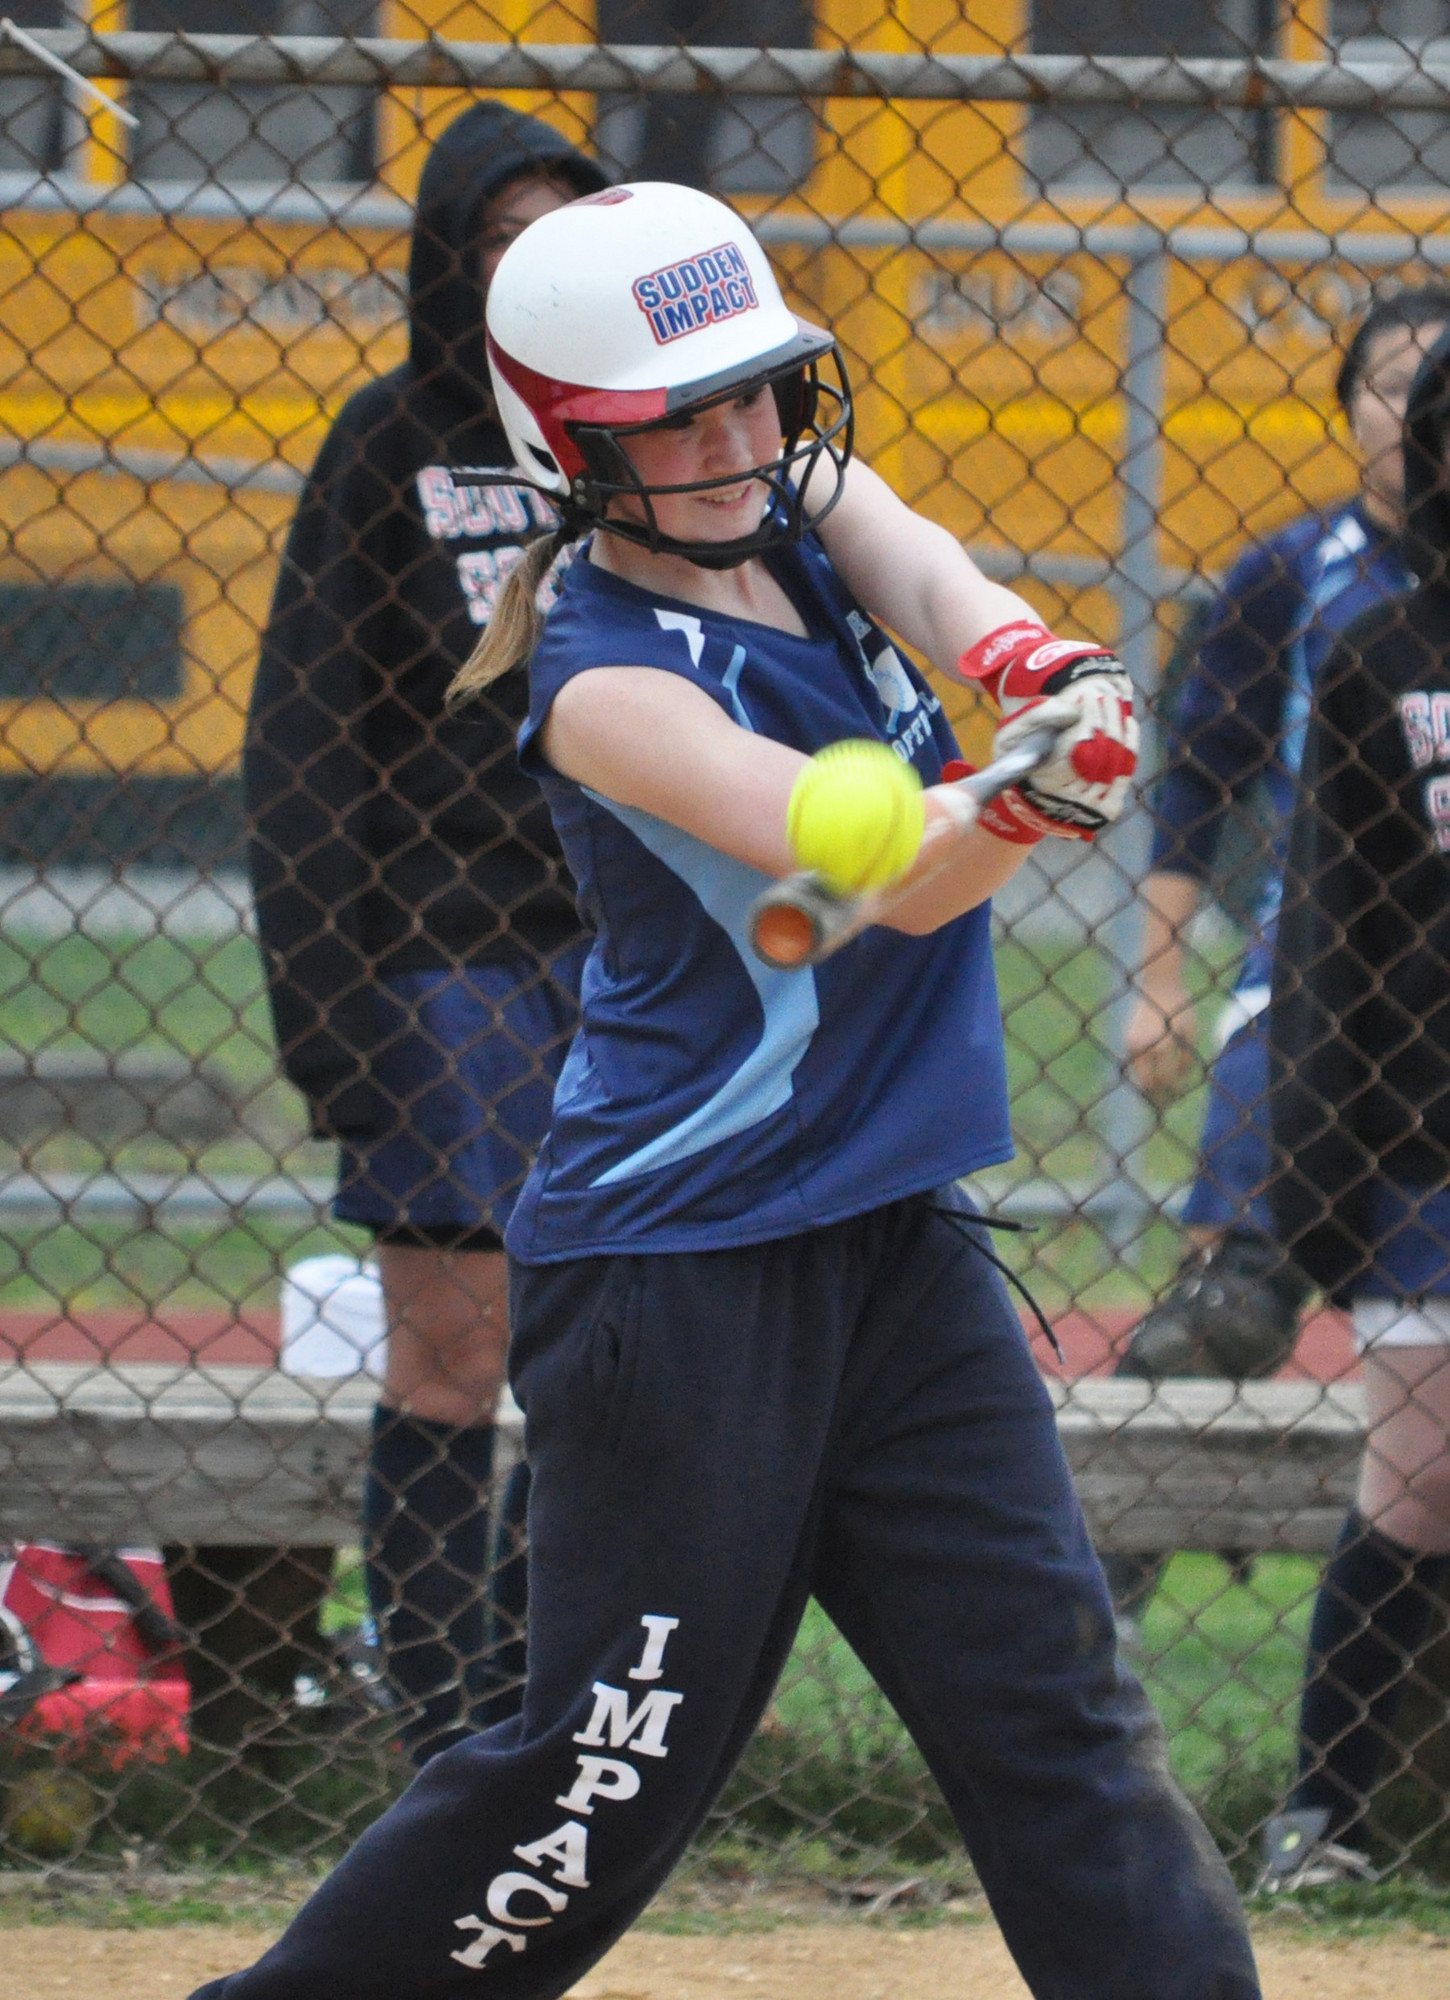 South Side's Katlyn Benincasa opened last Friday's game with a single and came around to score in an 8-5 loss to visiting Oyster Bay.